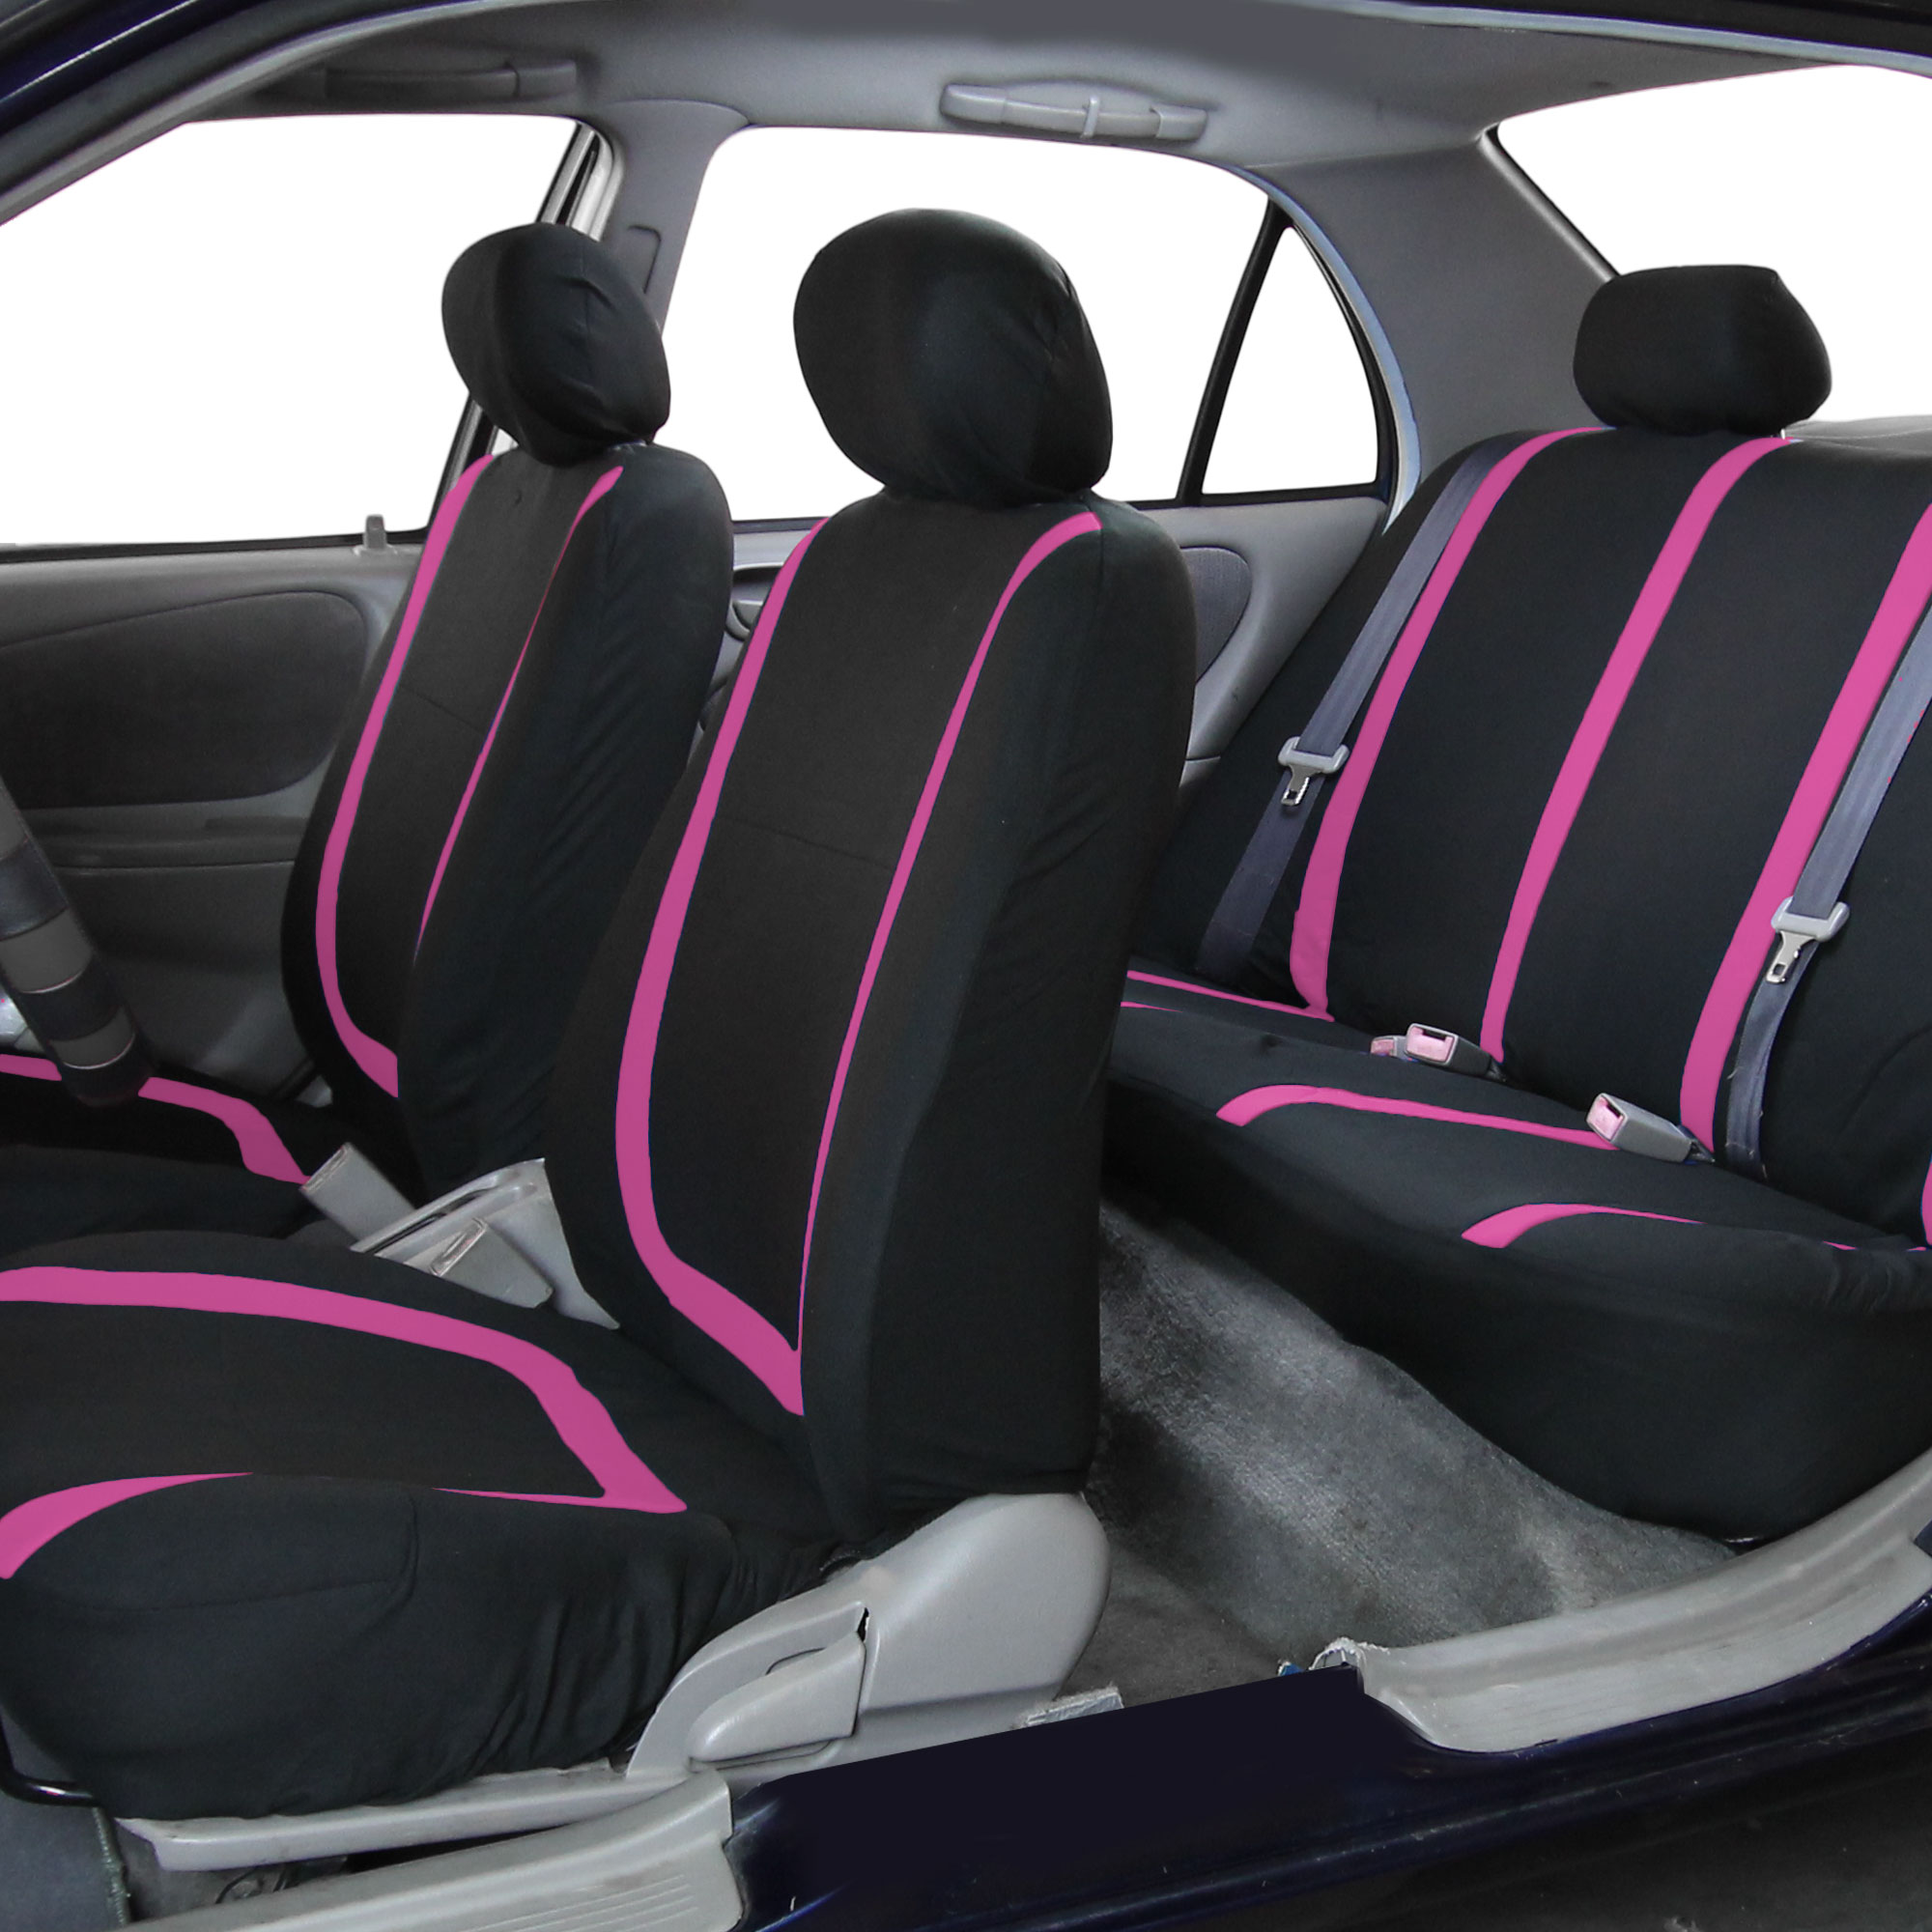 Black Pink Car Seat Covers With Black Rubber Floor Mats For Auto Car